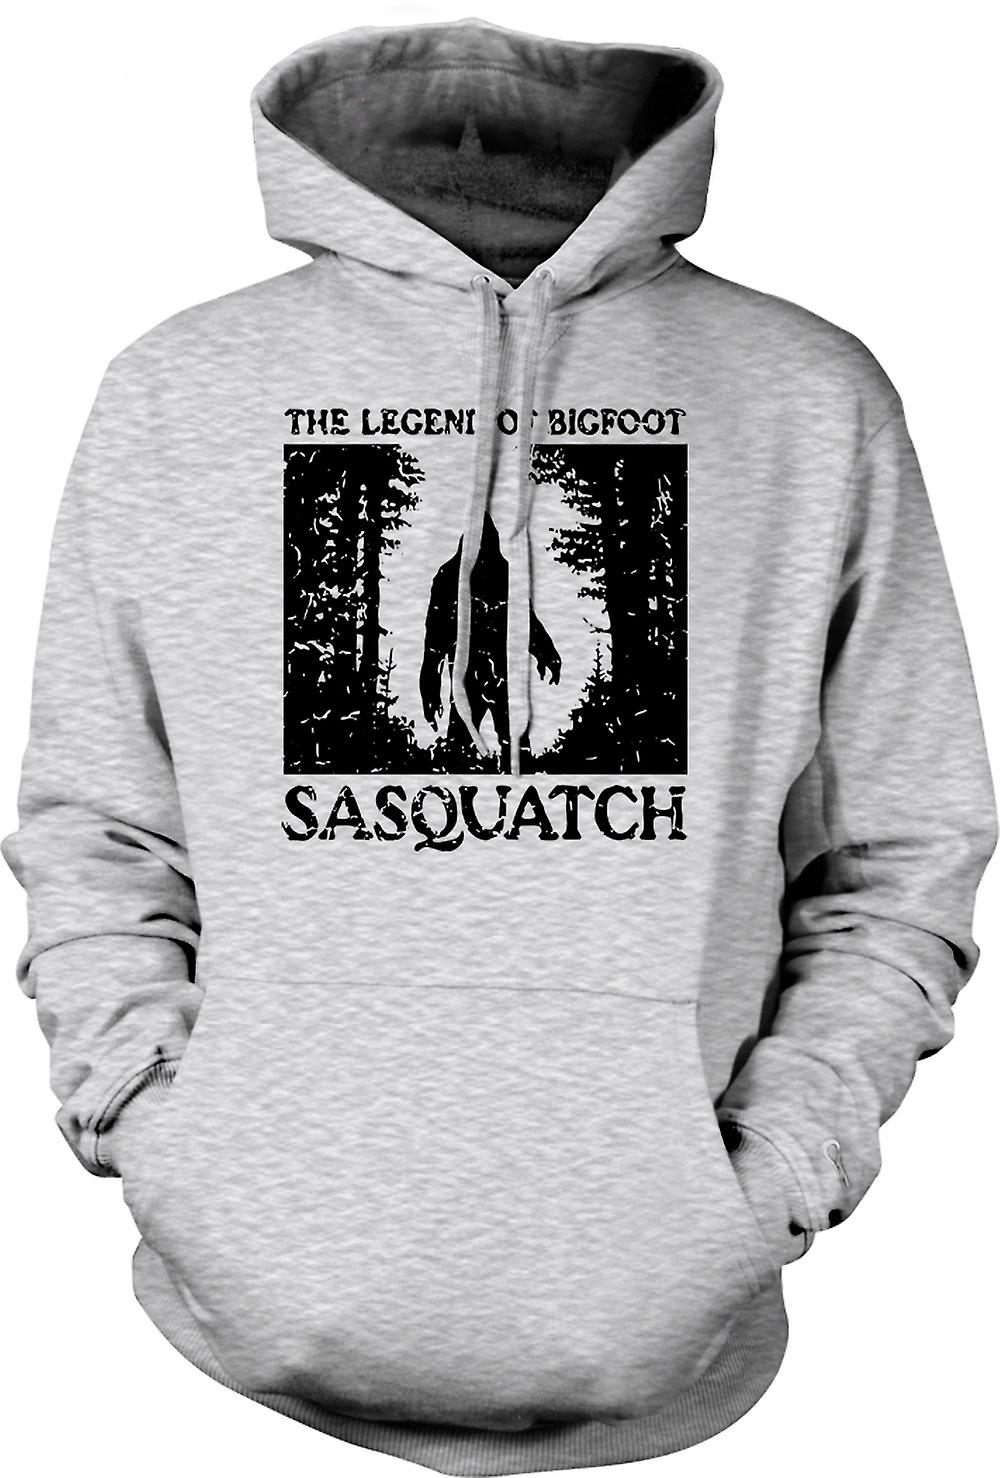 Mens Hoodie - Sasquatch Yeti Bigfoot Sighting - Cryptozoology